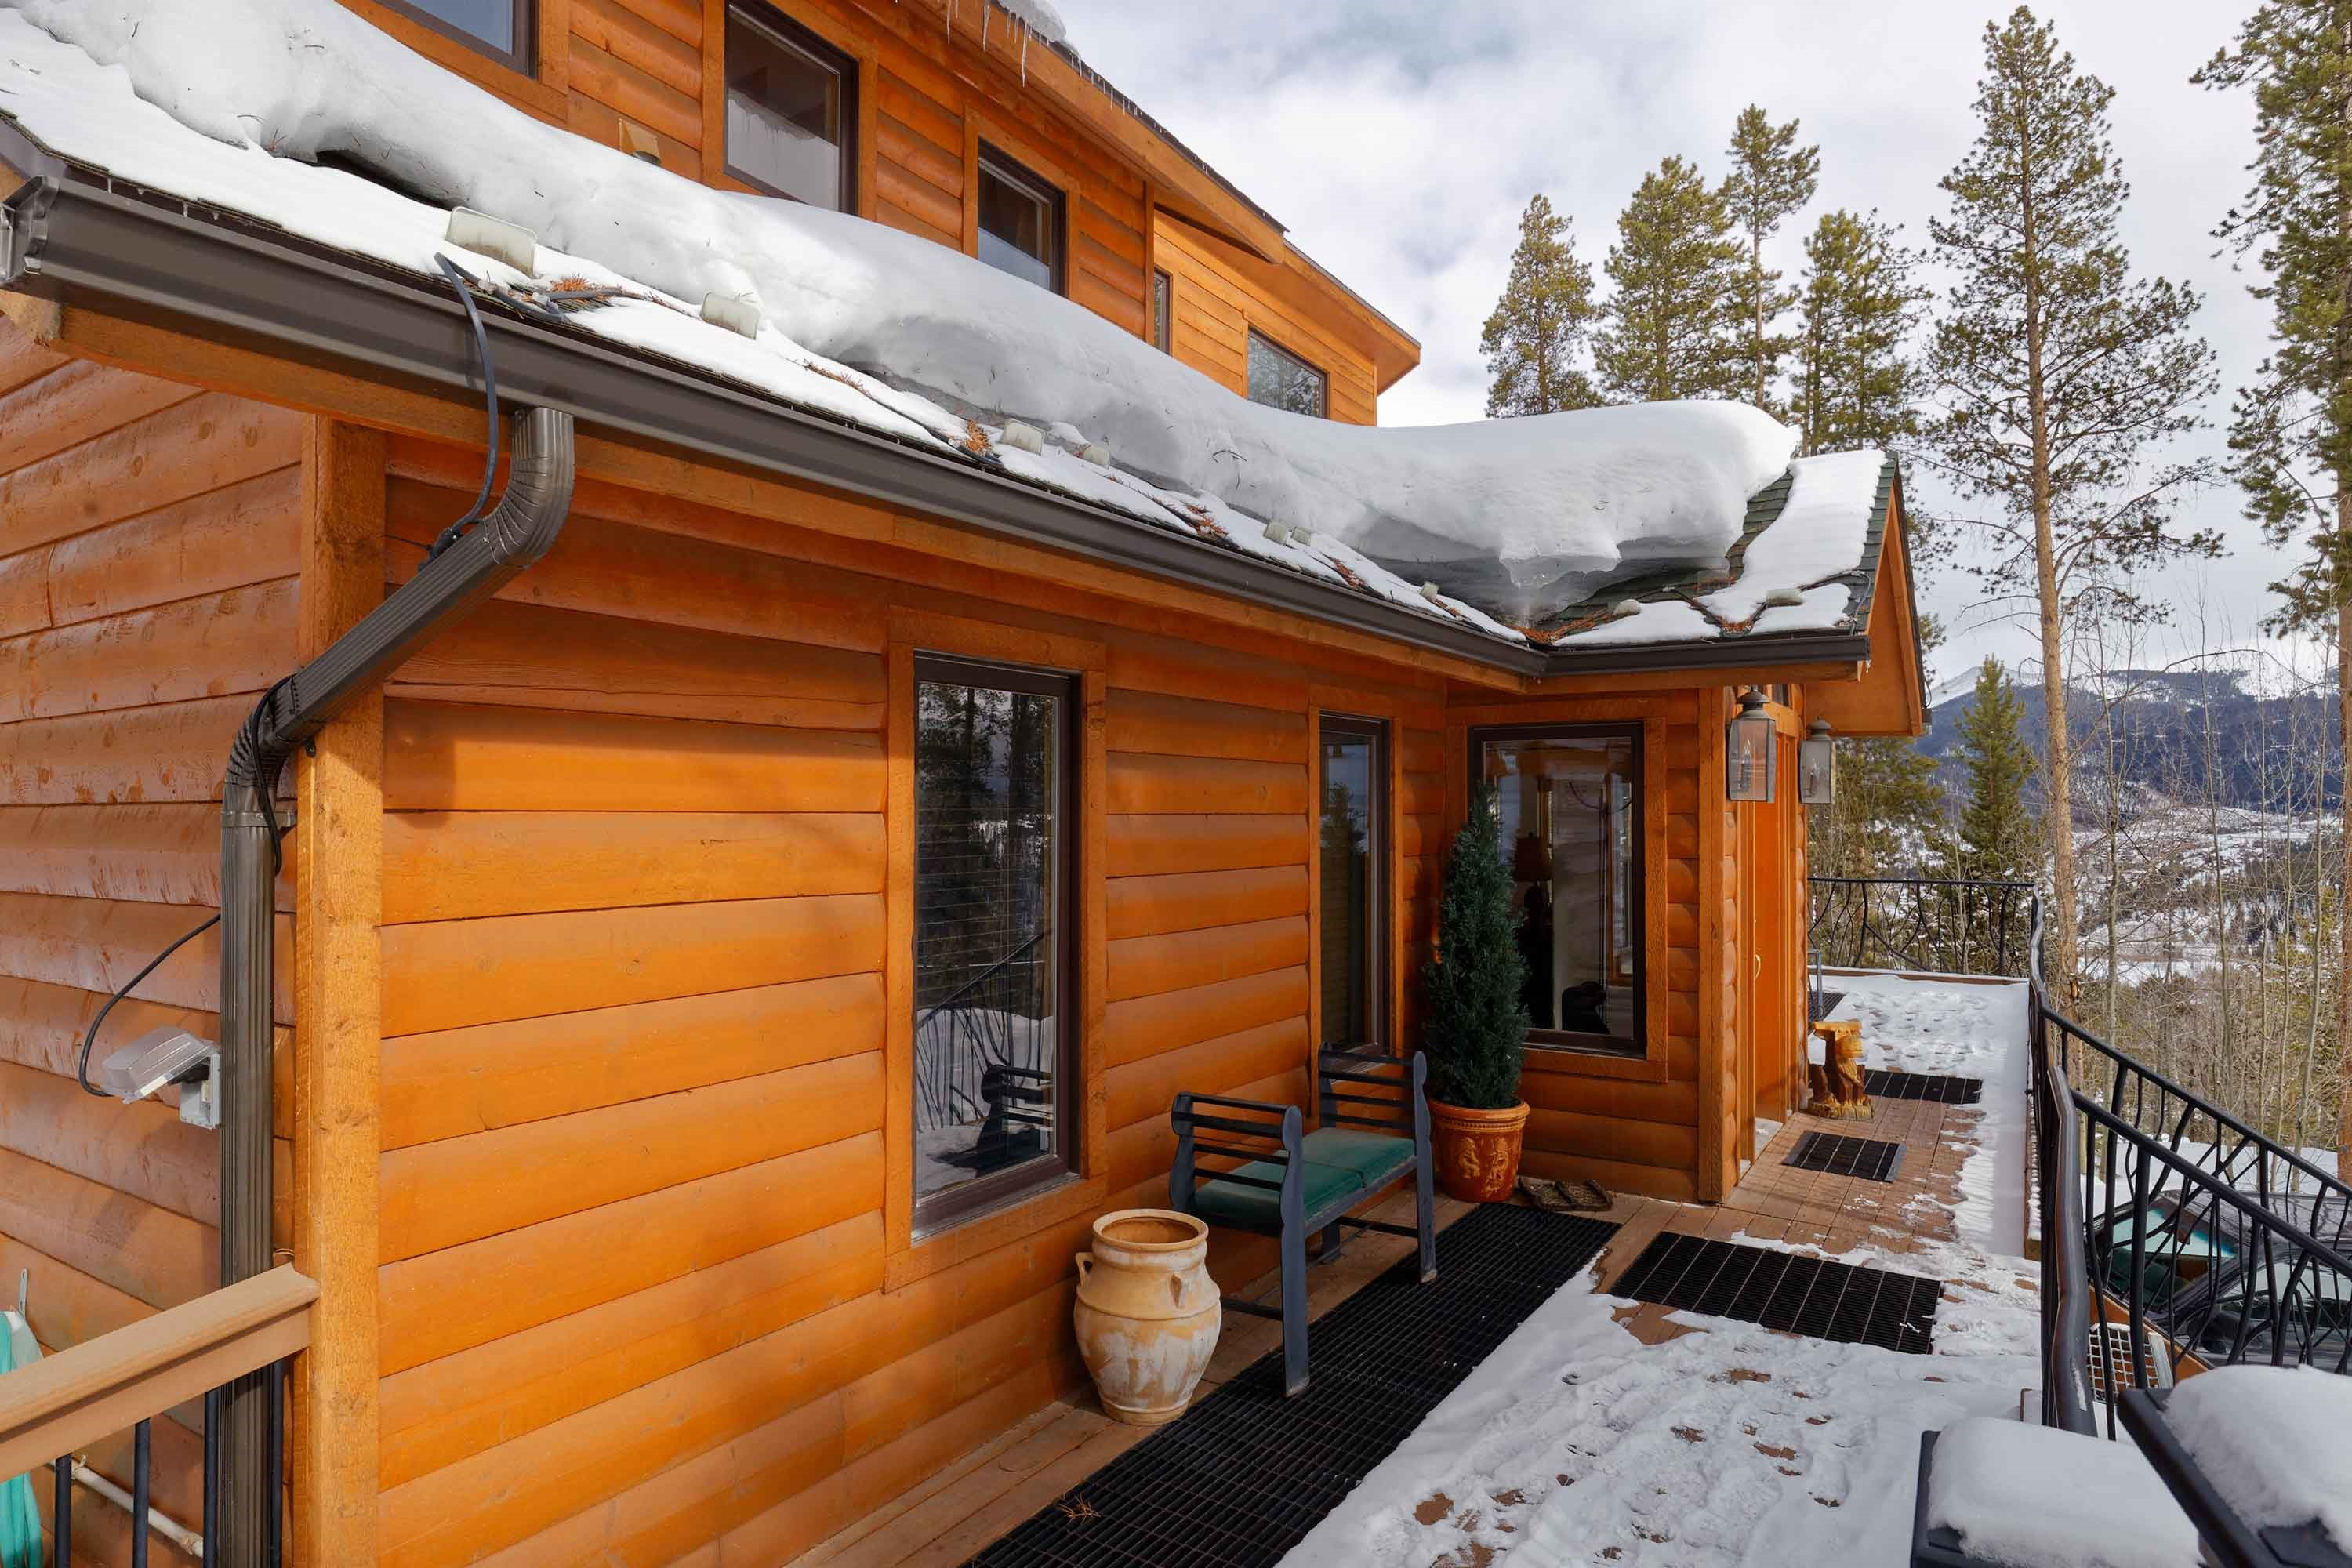 s rentals upstairs hideout the cabins rental honeymoon cabin at log bedroom mountain alternate img rocky denver of view